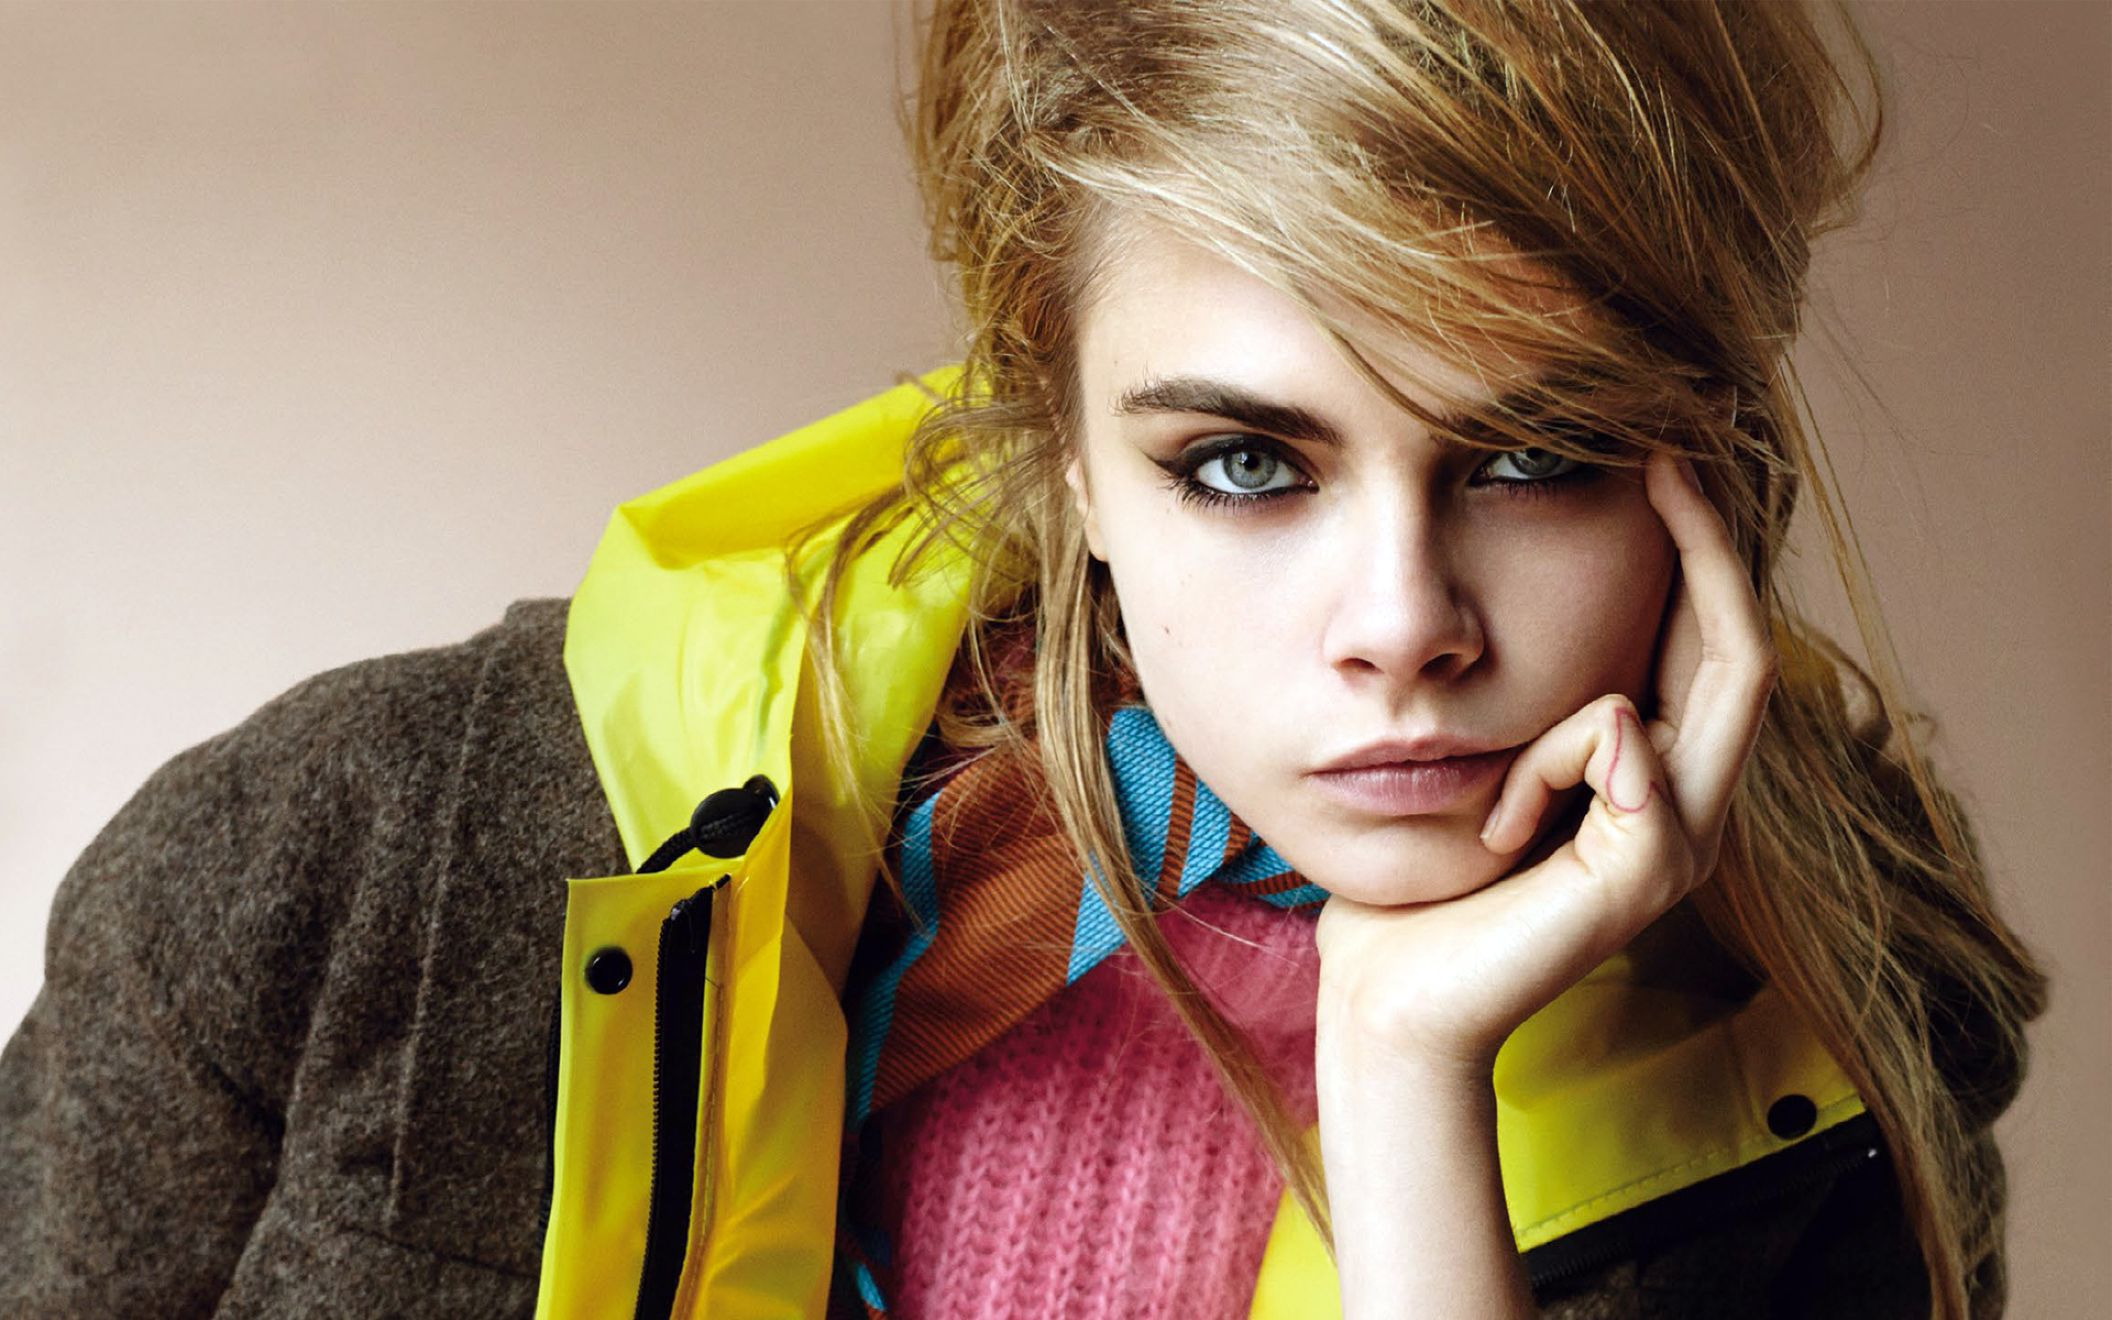 Download free HD Cara Delevingne 4 Wide Wallpaper, image